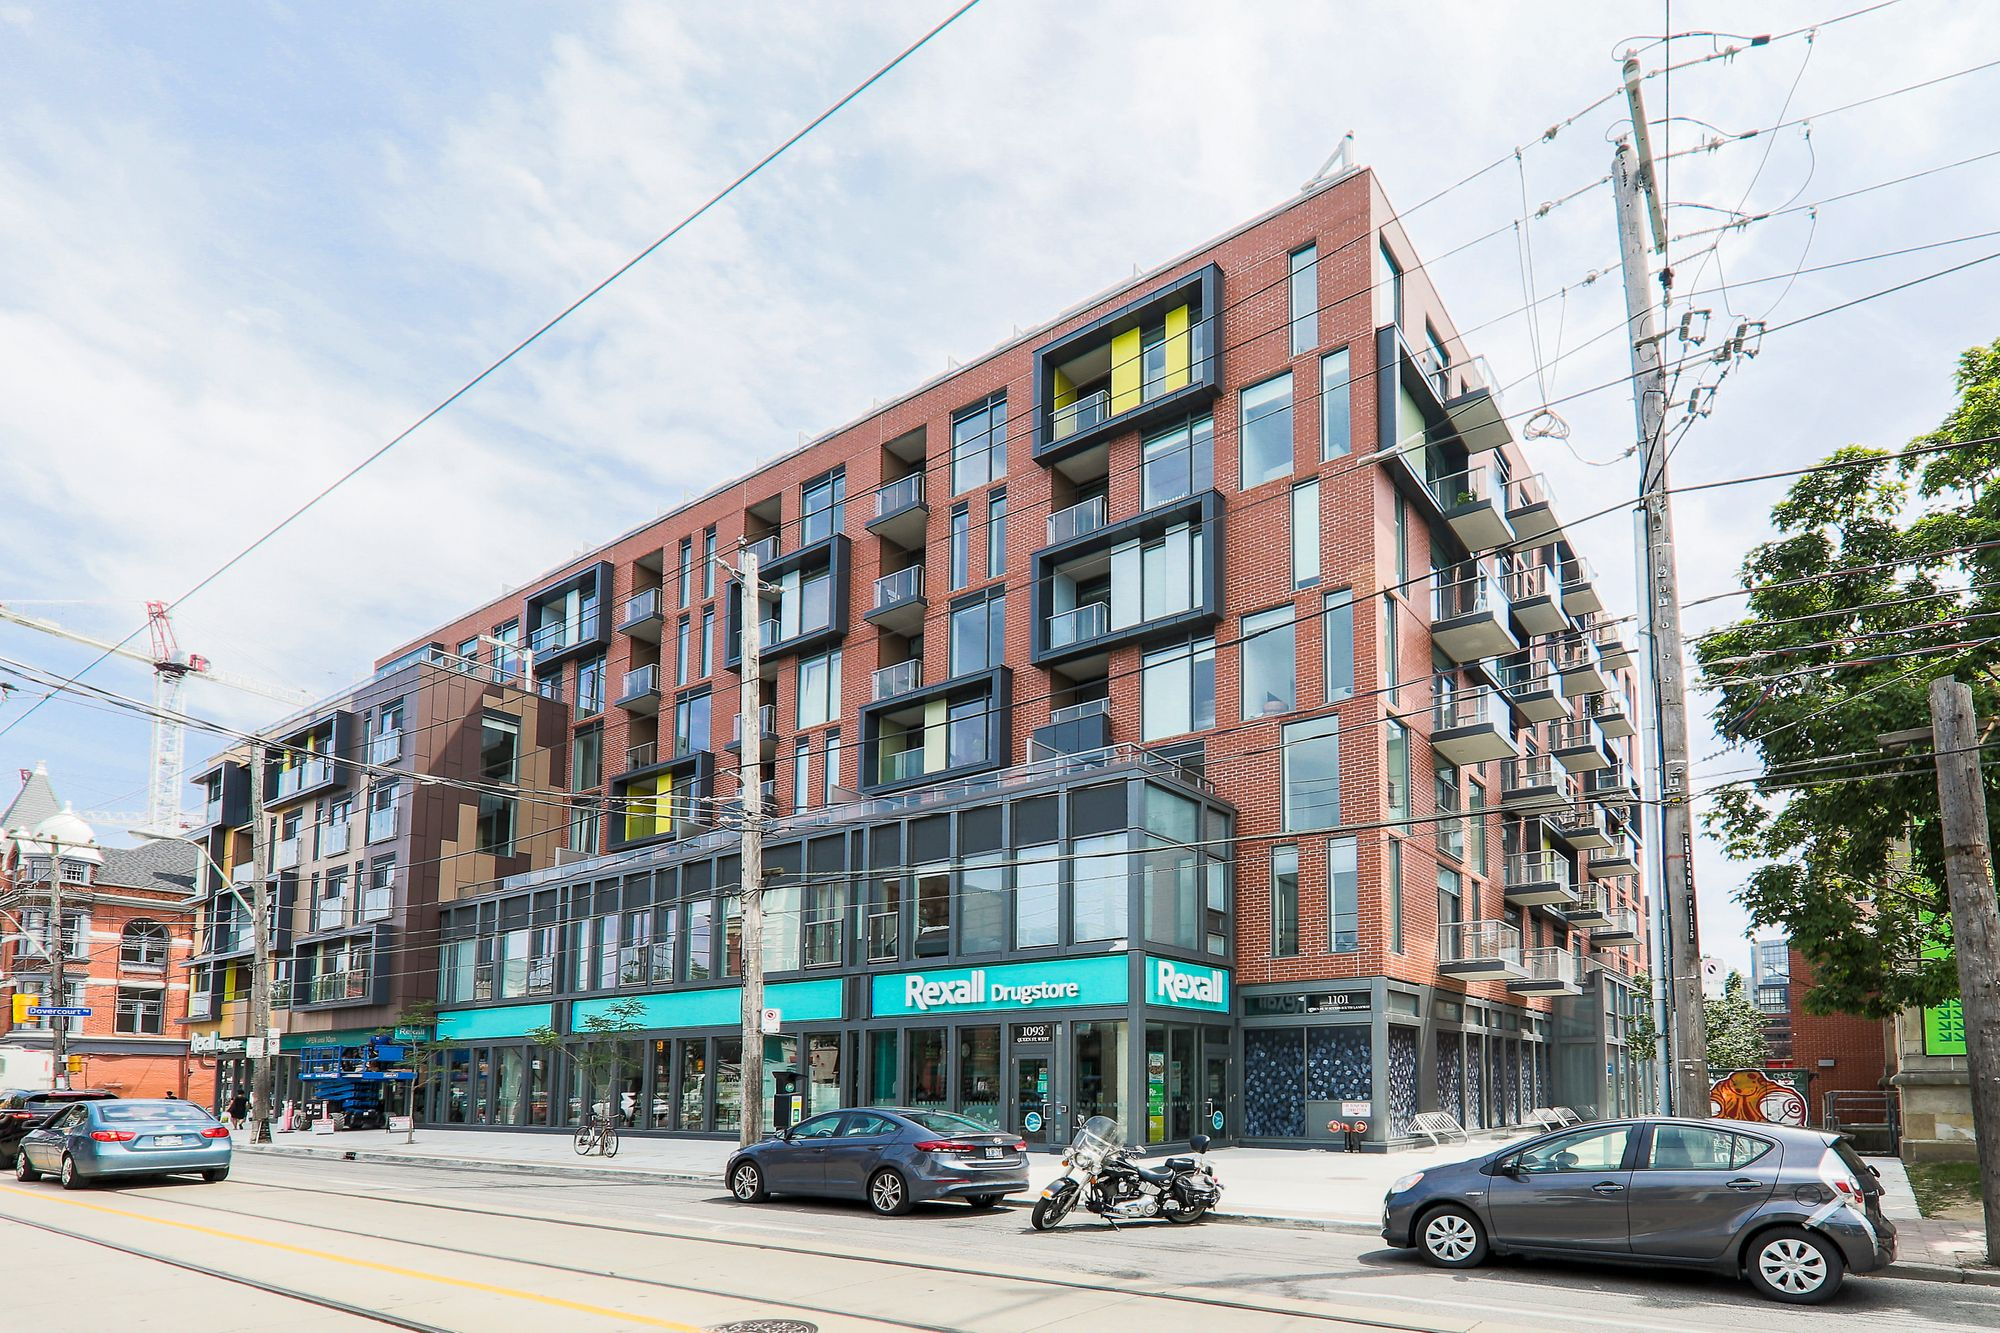 TEN93 Condos at 1093 Queen St W & 106 Dovercourt Rd. This loft is located in  West End, Toronto - image #1 of 5 by Strata.ca